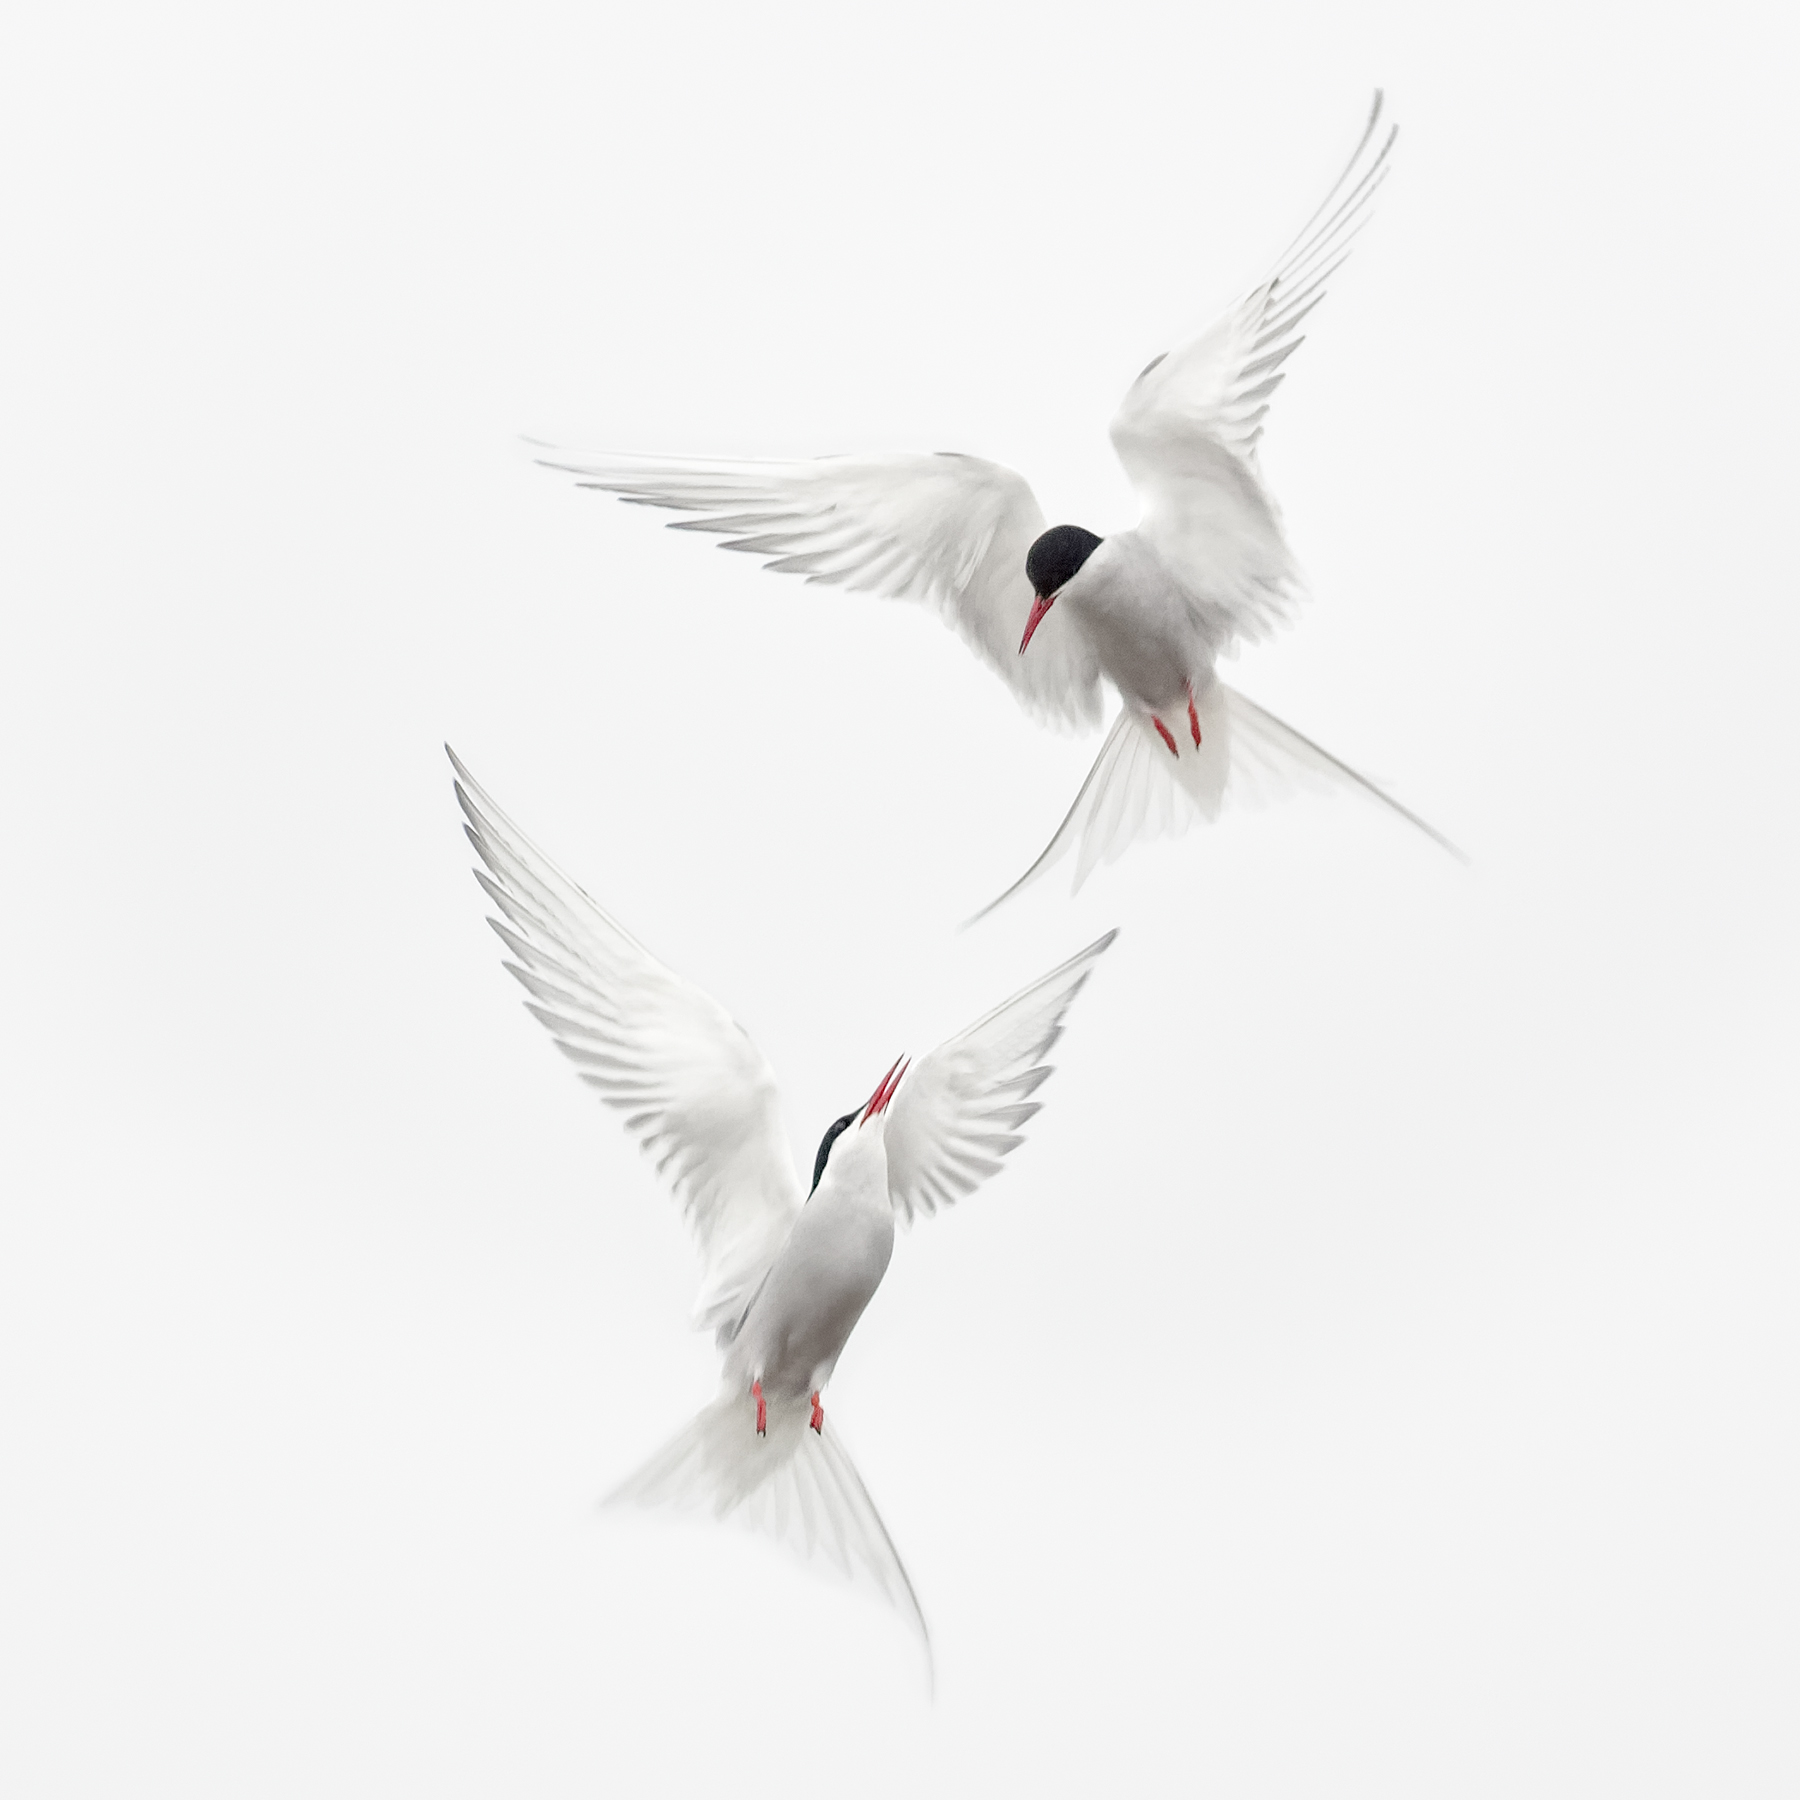 Brian_Jones_Arctic Terns Courtship Flight 3.jpg